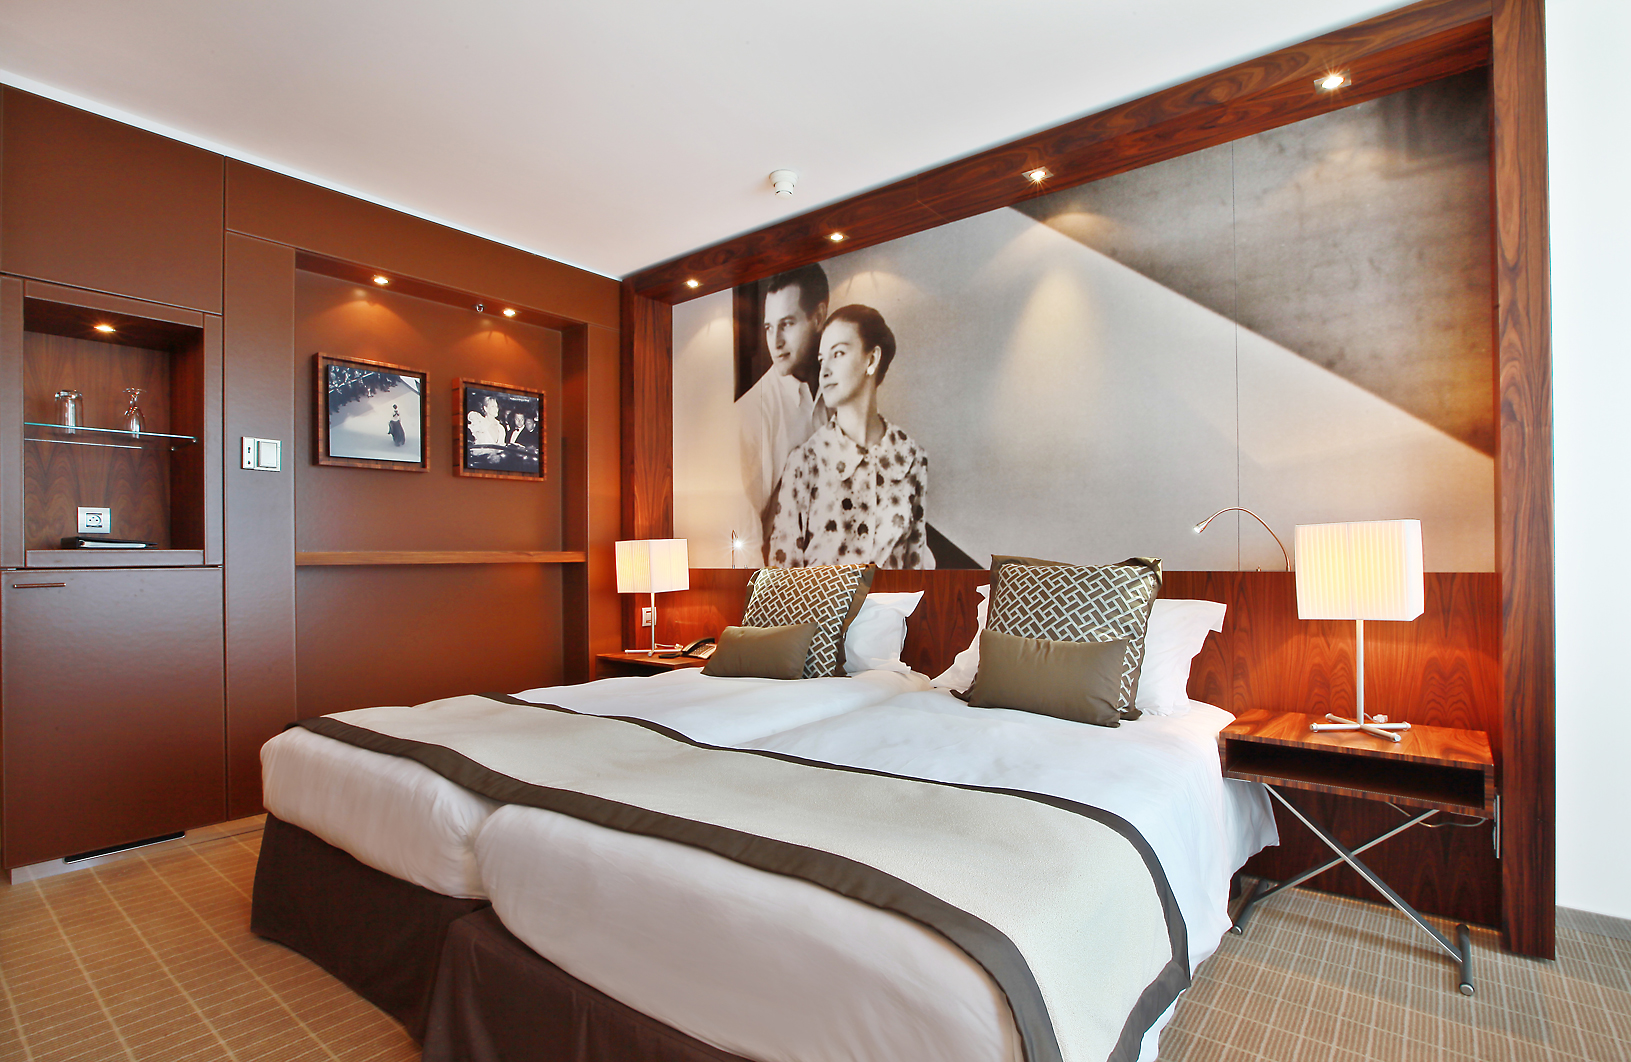 the 7 ps of marriott Home hilton swot 7ps 7 meal 8 use guestroom (overnight) 9 pay tv 10 room service/breakfast (24-hour) marriott and intercontinental.